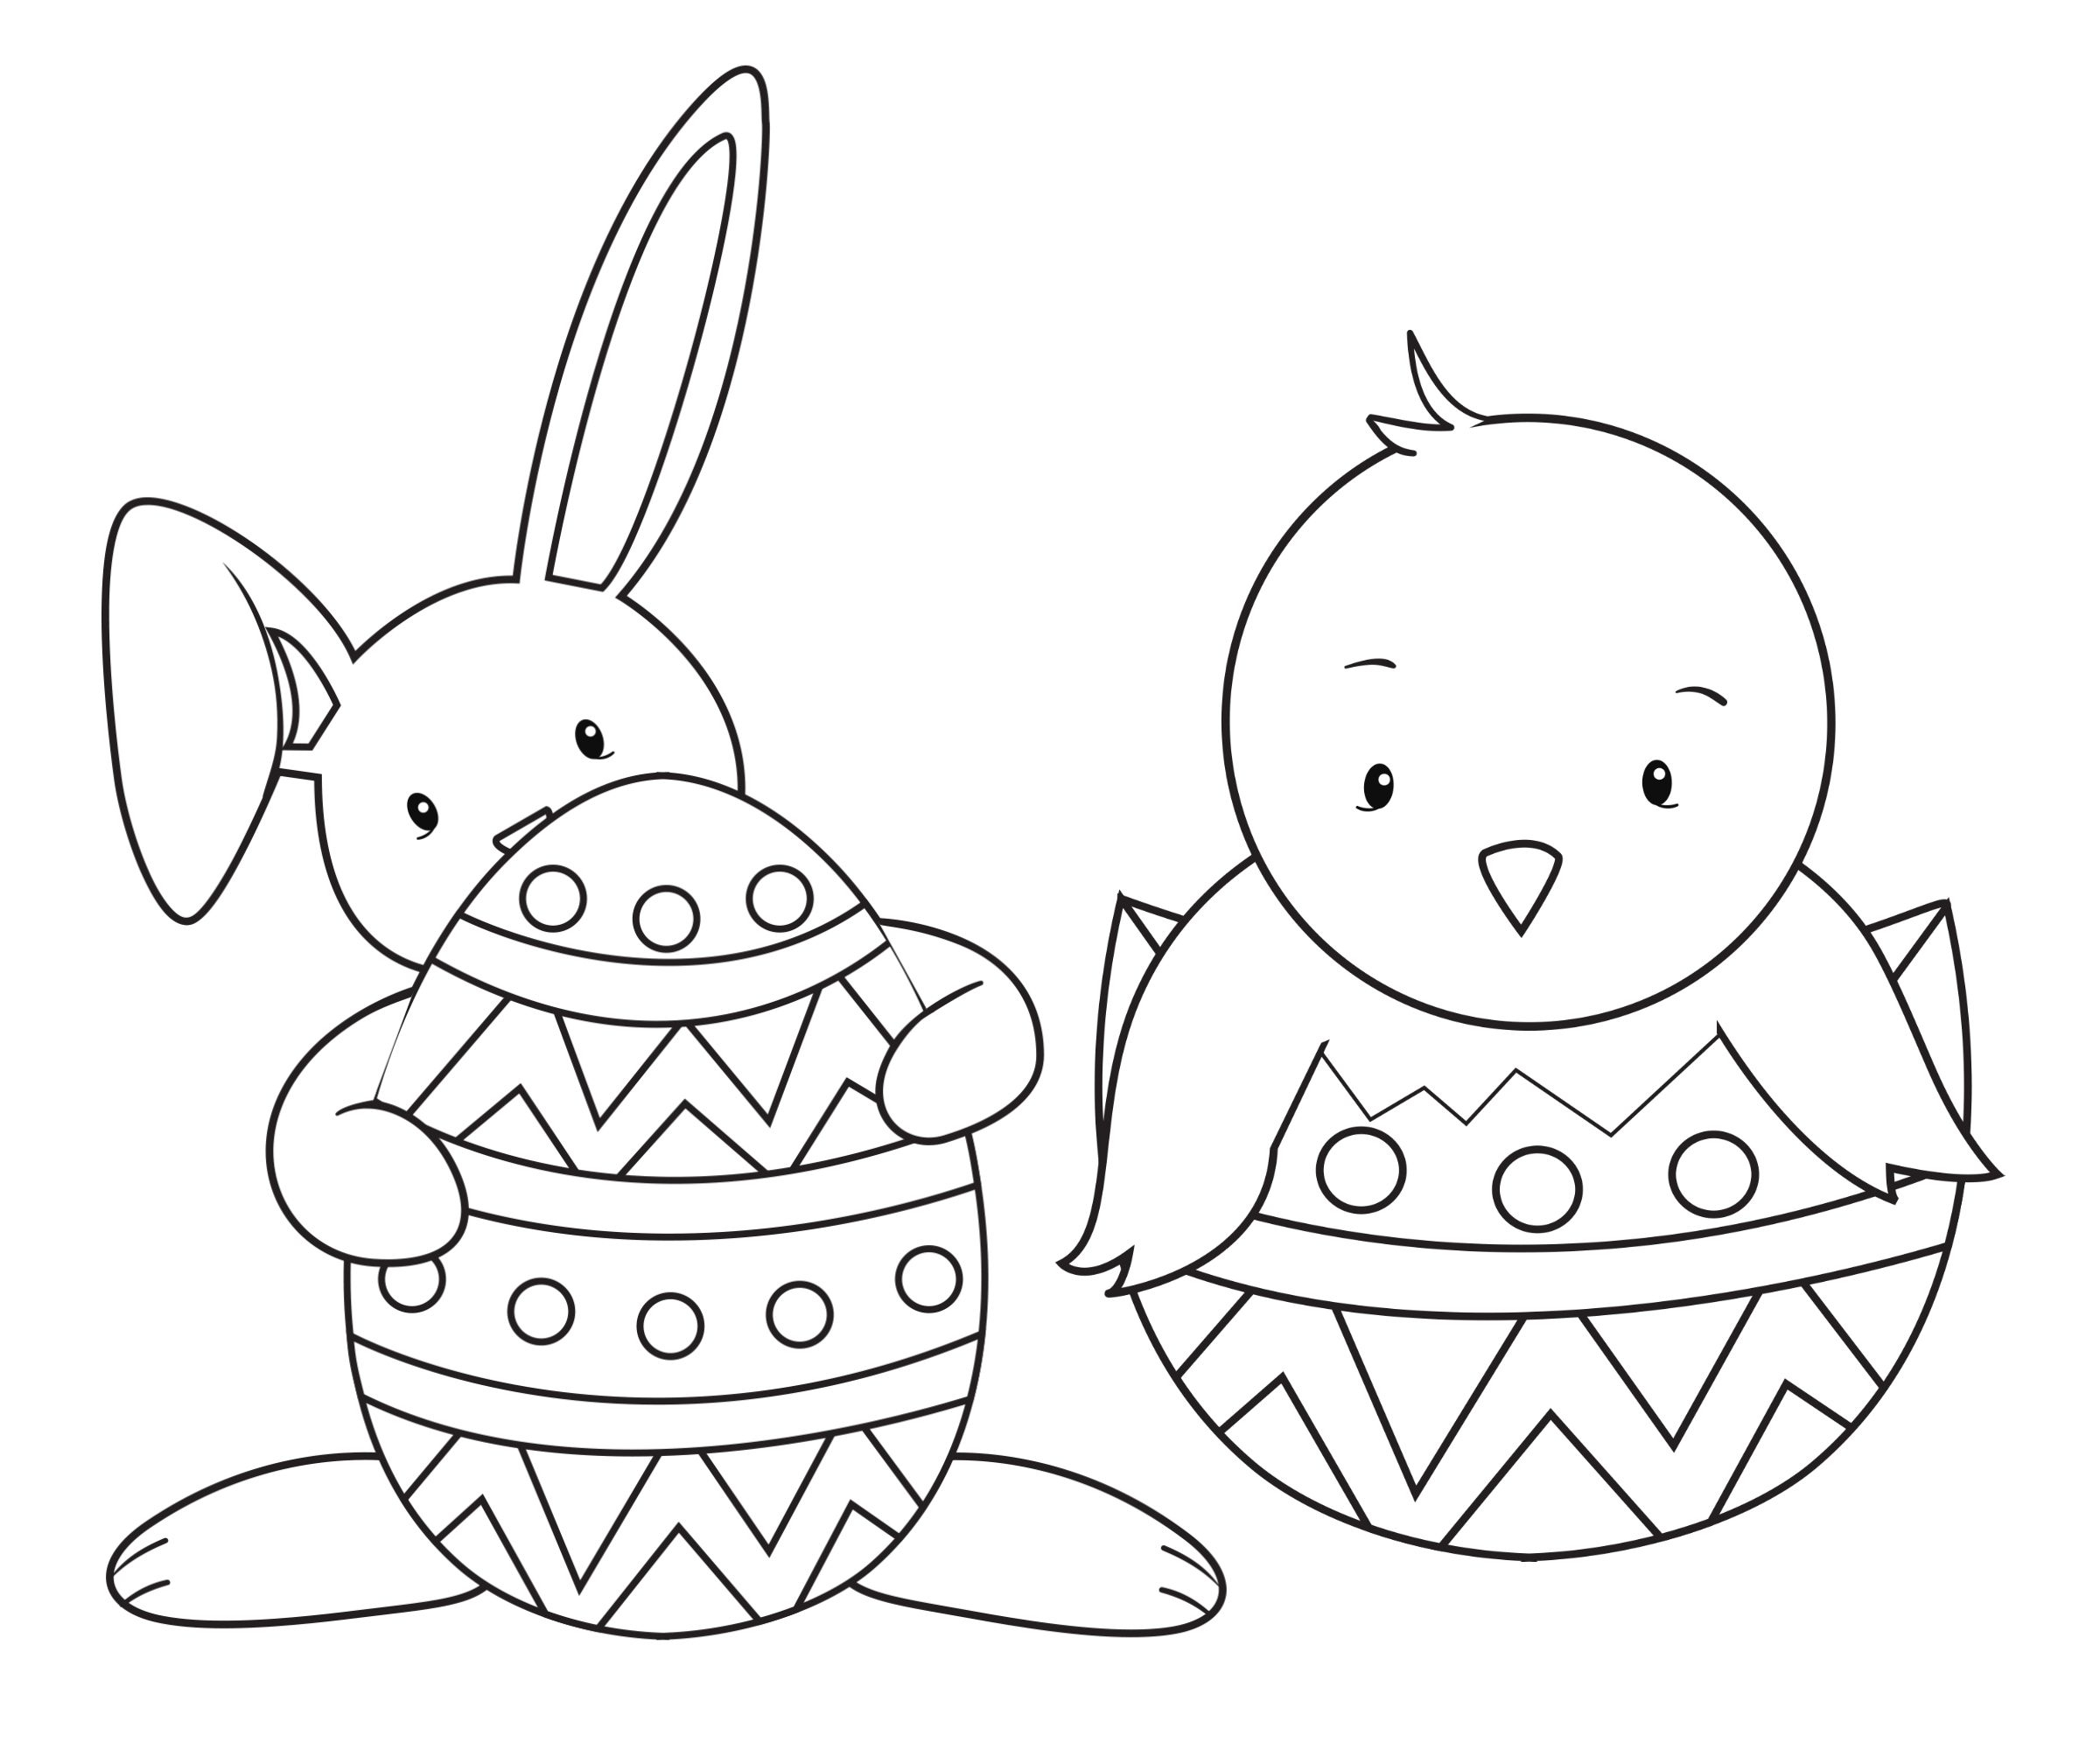 Easter Egg Coloring Pages Printable Collection – Free Coloring Sheets